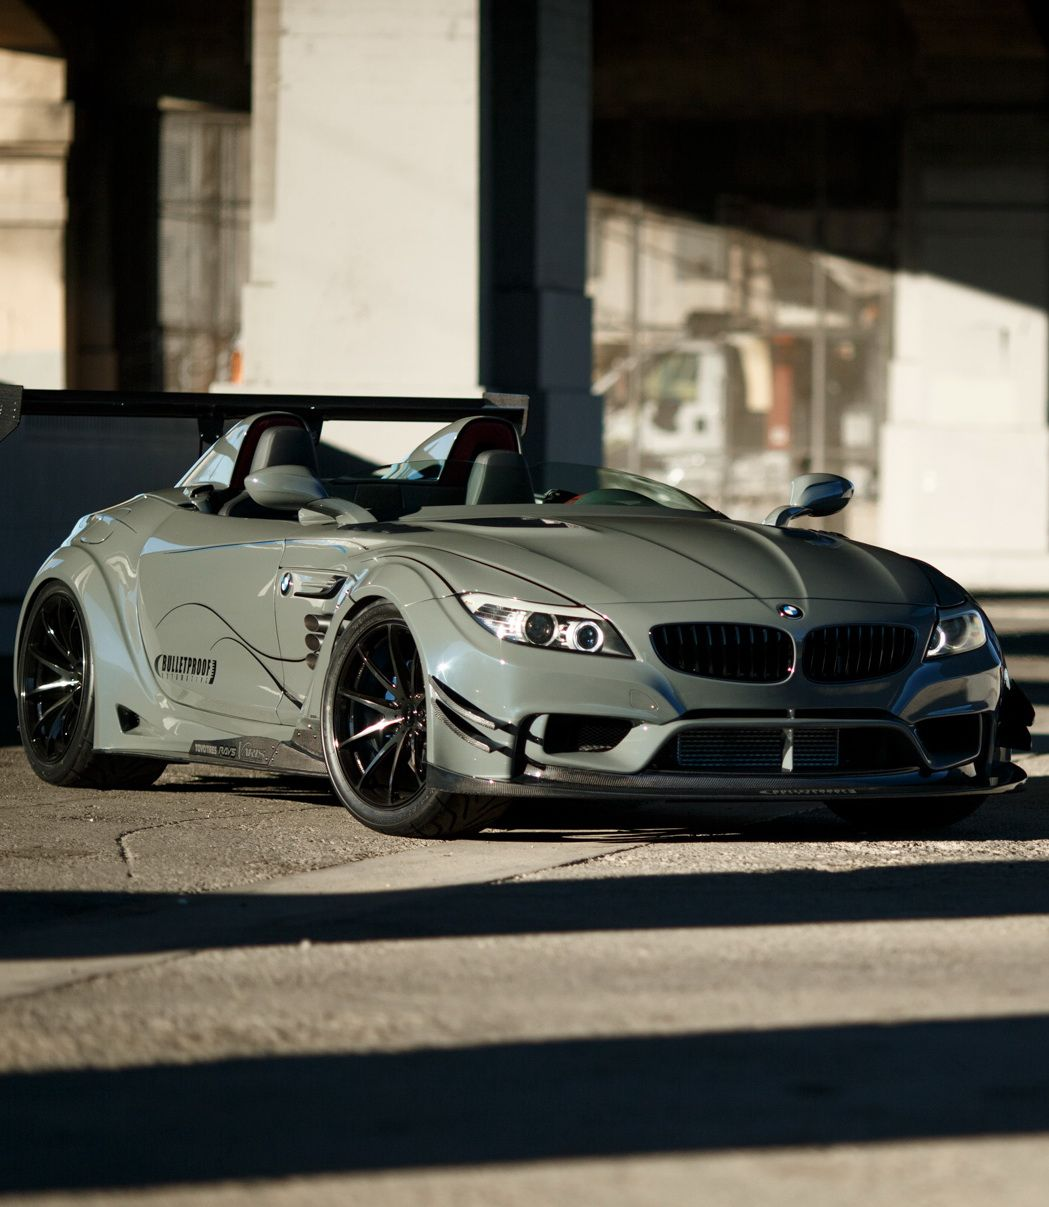 Bmw Z4 M Coupe: Bulletproof BMW Z4 E89